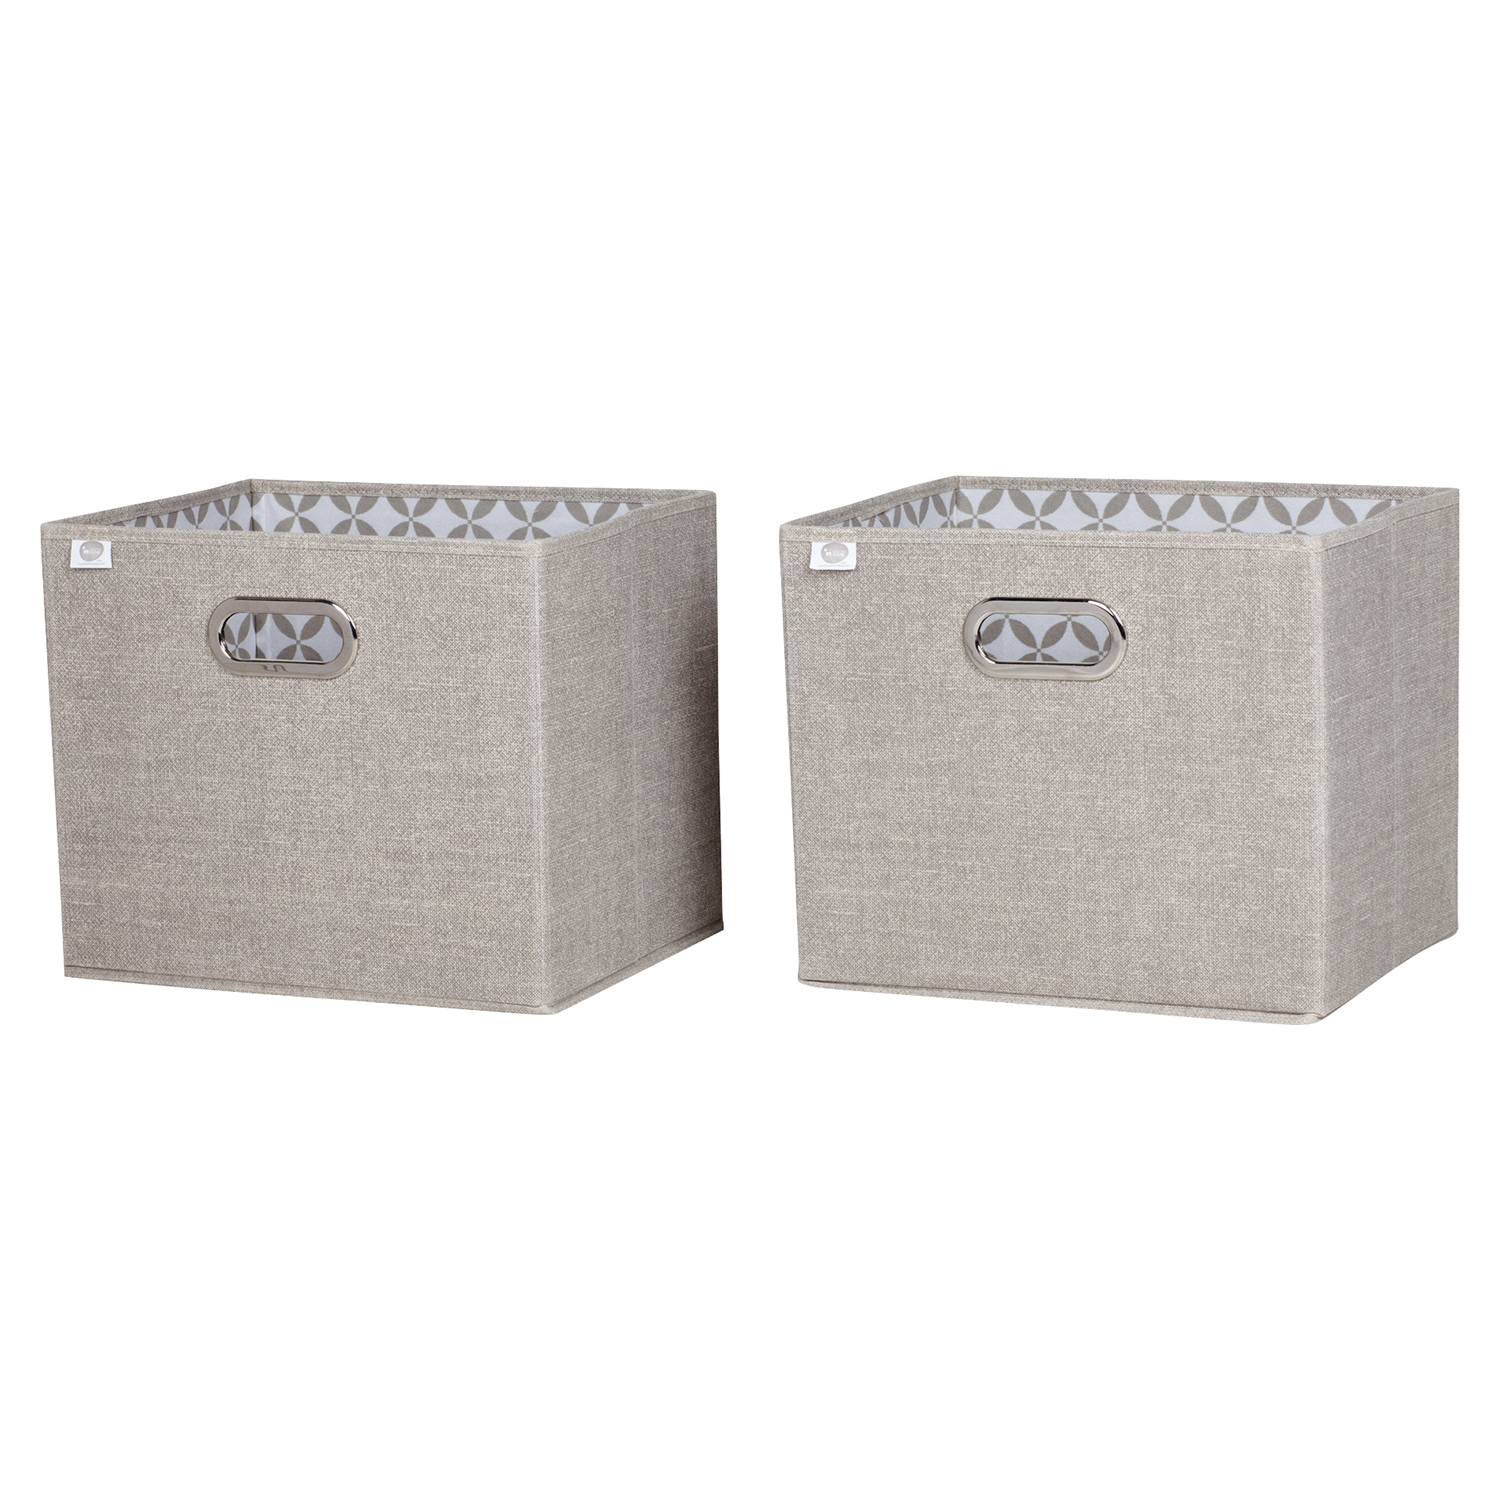 Storit 2 Pack Chambray Fabric Storage Basket - Taupe - SS-8050139